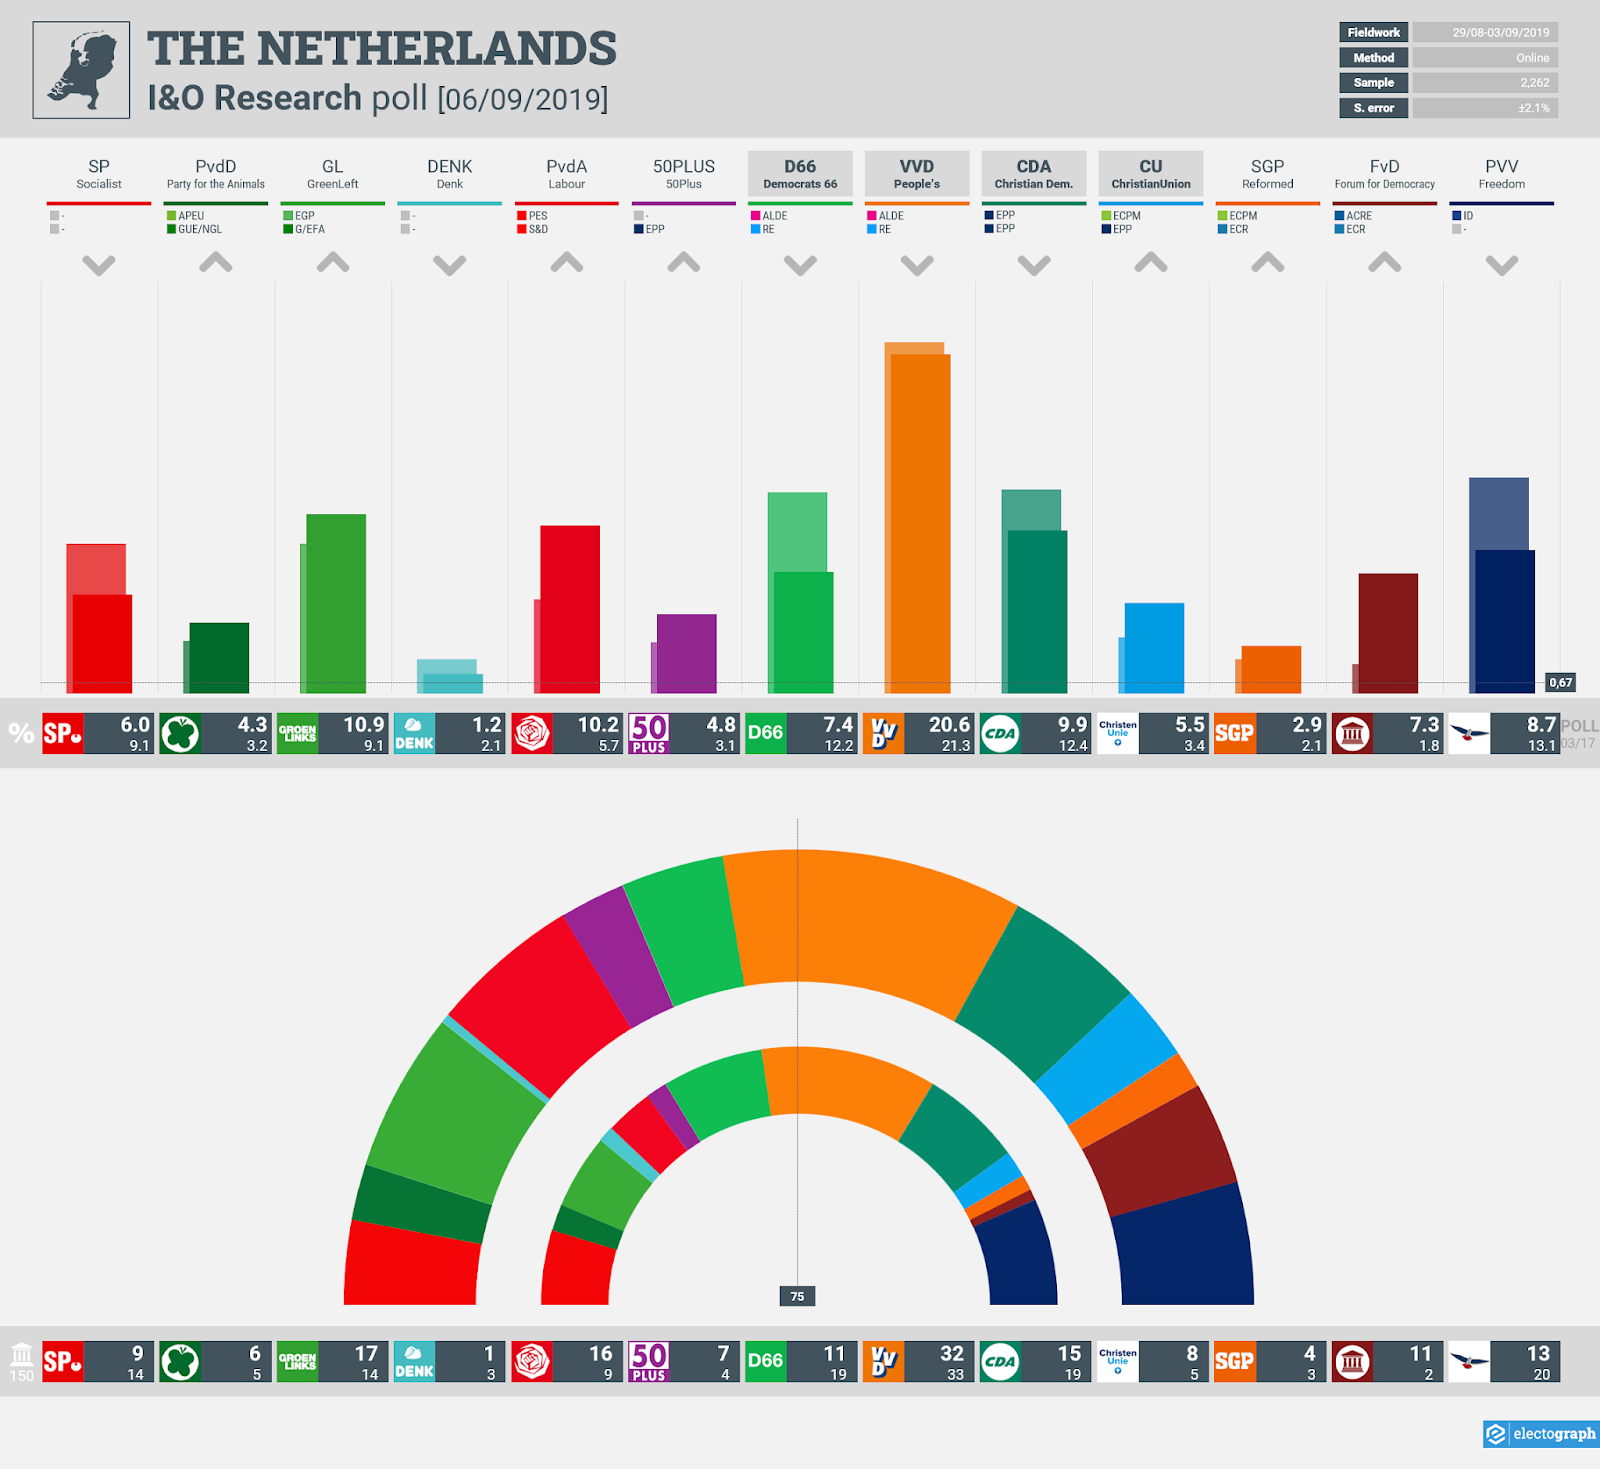 THE NETHERLANDS: I&O Research poll chart, 6 September 2019